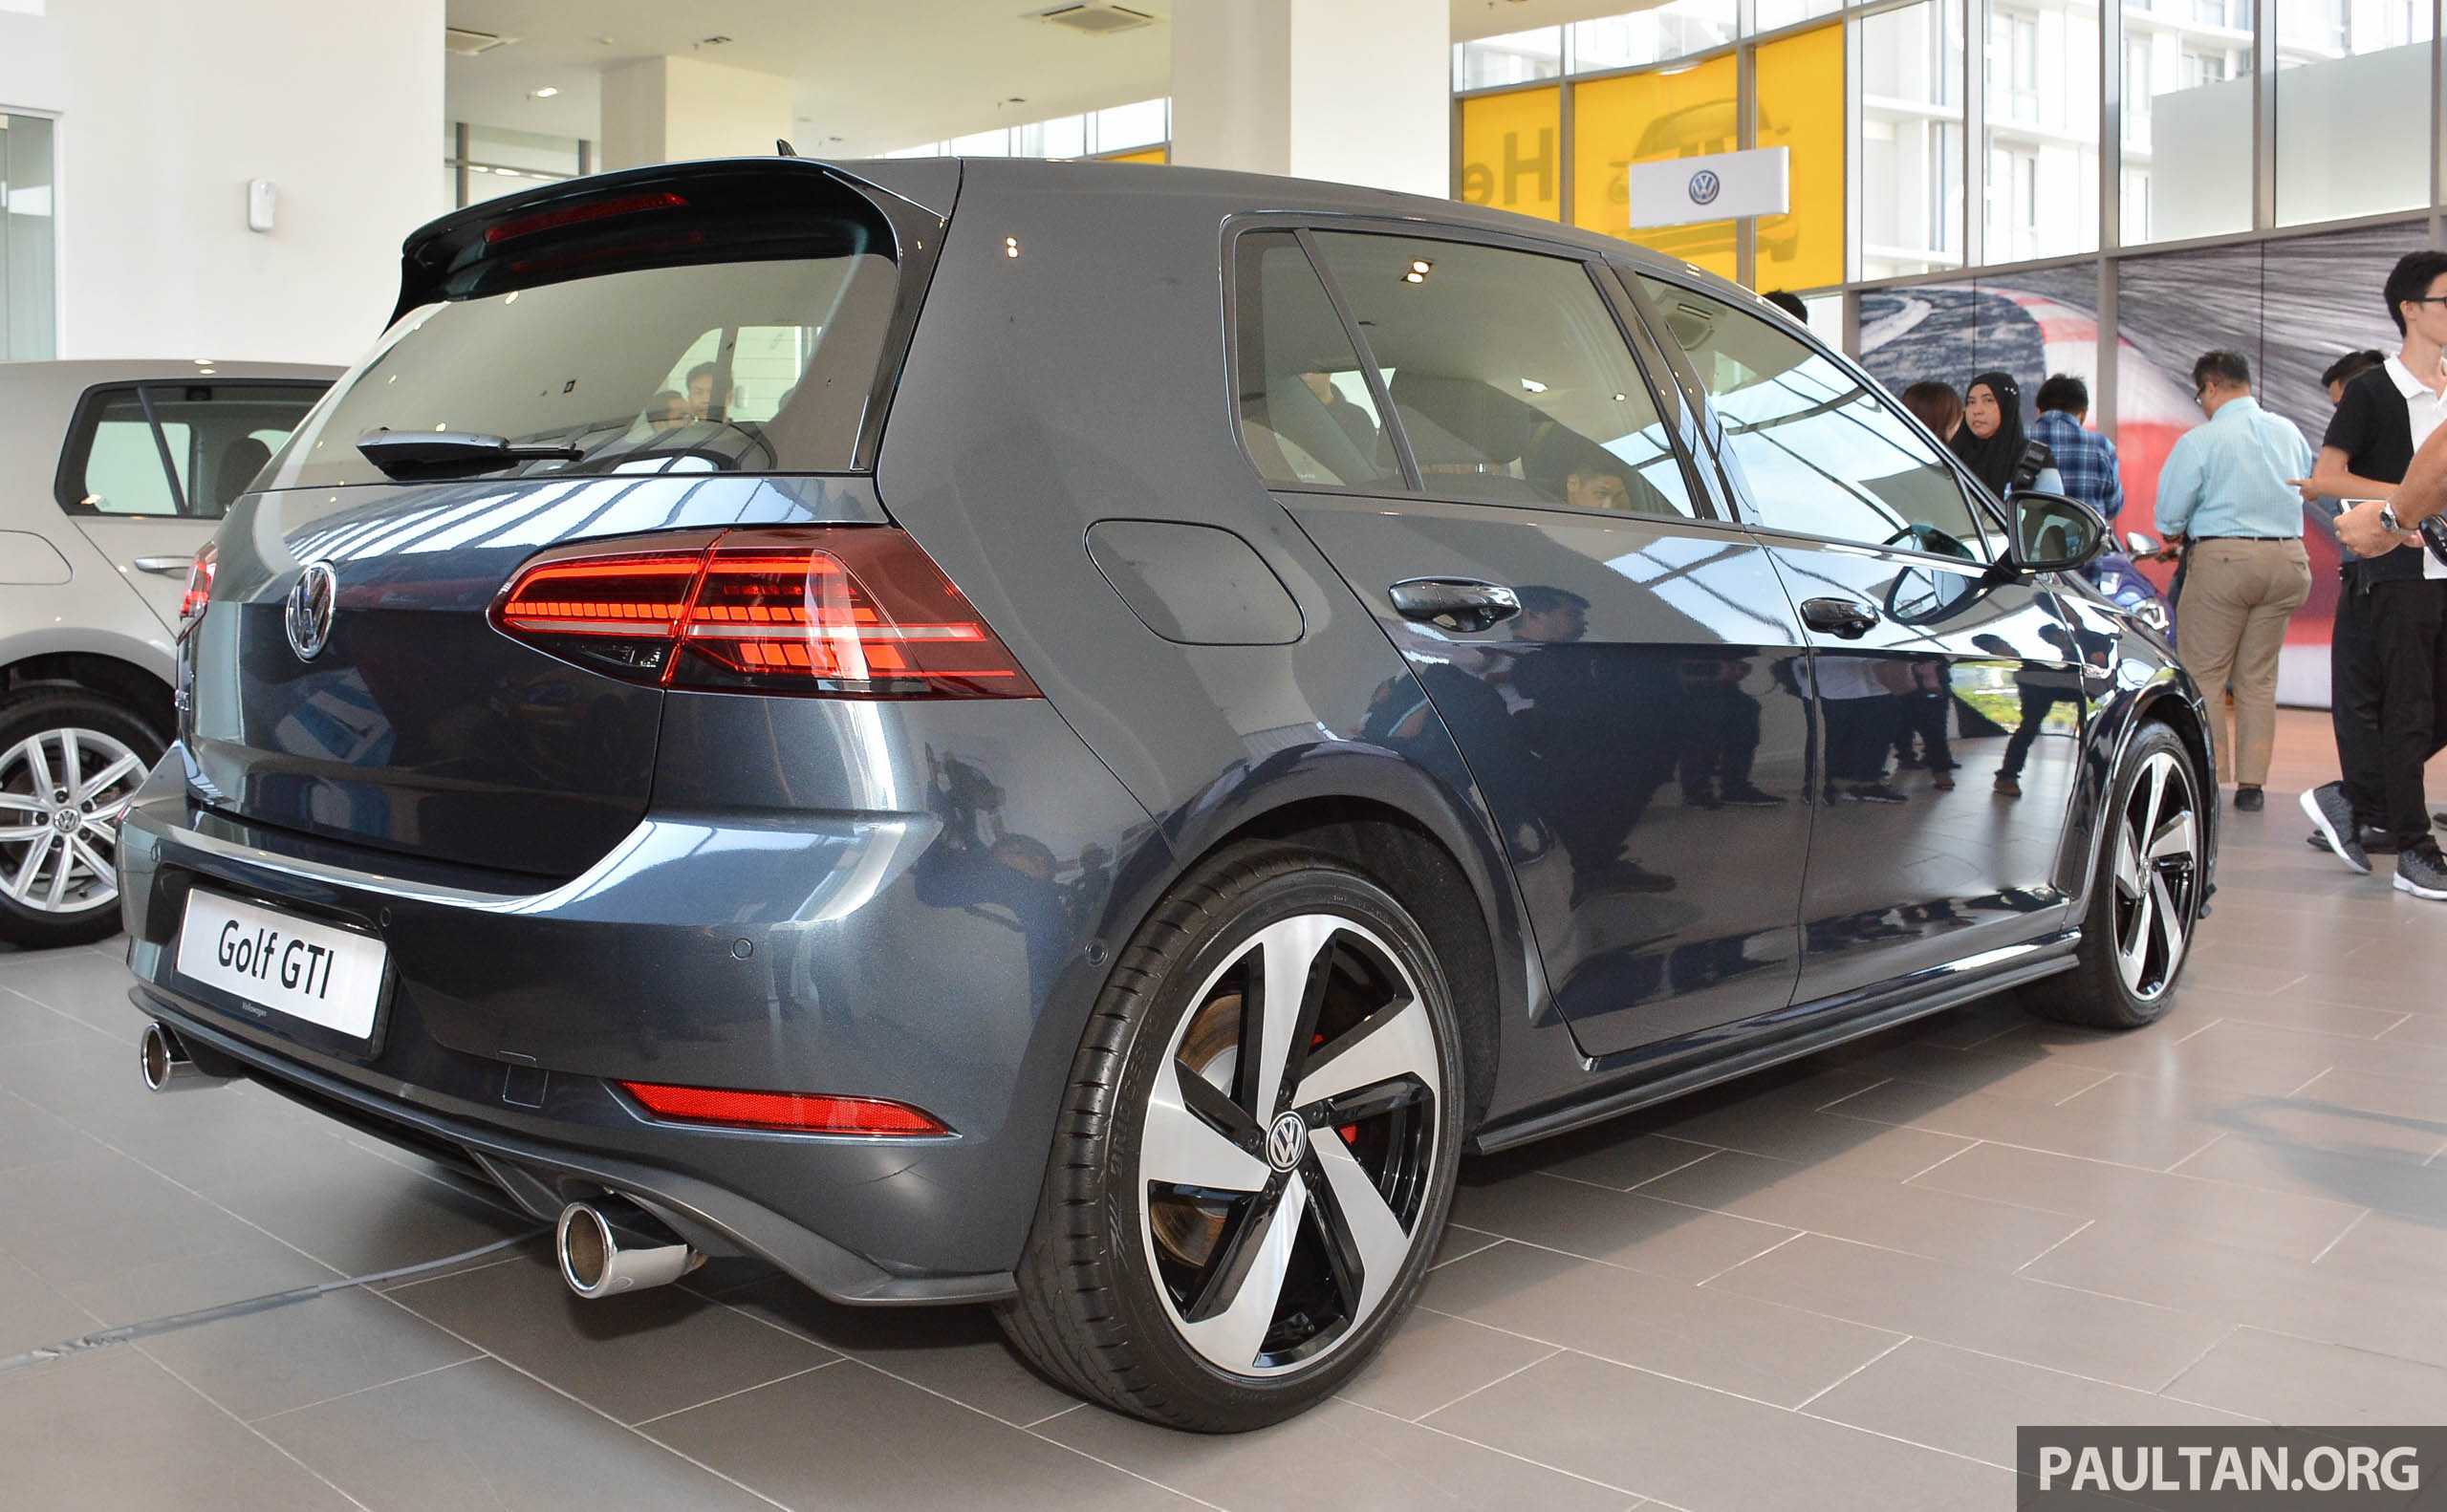 2018 Gti S >> Mk7.5 Volkswagen Golf R 大马上市,售价 RM 295,990 2018 Volkswagen Golf GTI launch 3 - Paul Tan 汽车资讯网